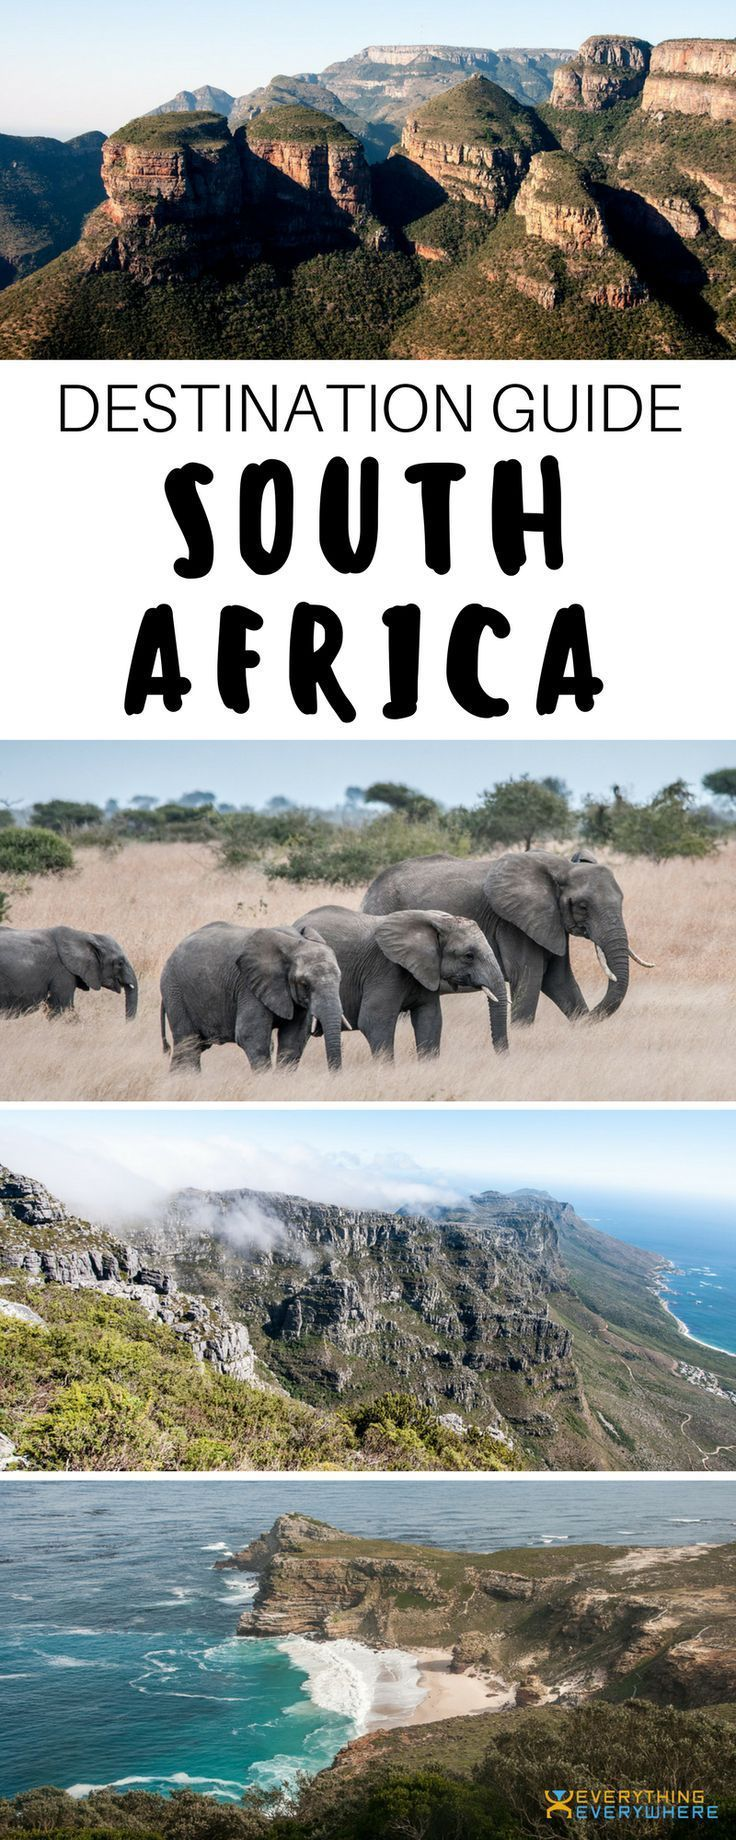 A complete guide to travel in South Africa. Top destinations and things to do including Kruger National Park, Table Mountain, Robben Island and more + Best South African food and cuisine and practical tips for your trip.   Everything Everywhere Travel Blo